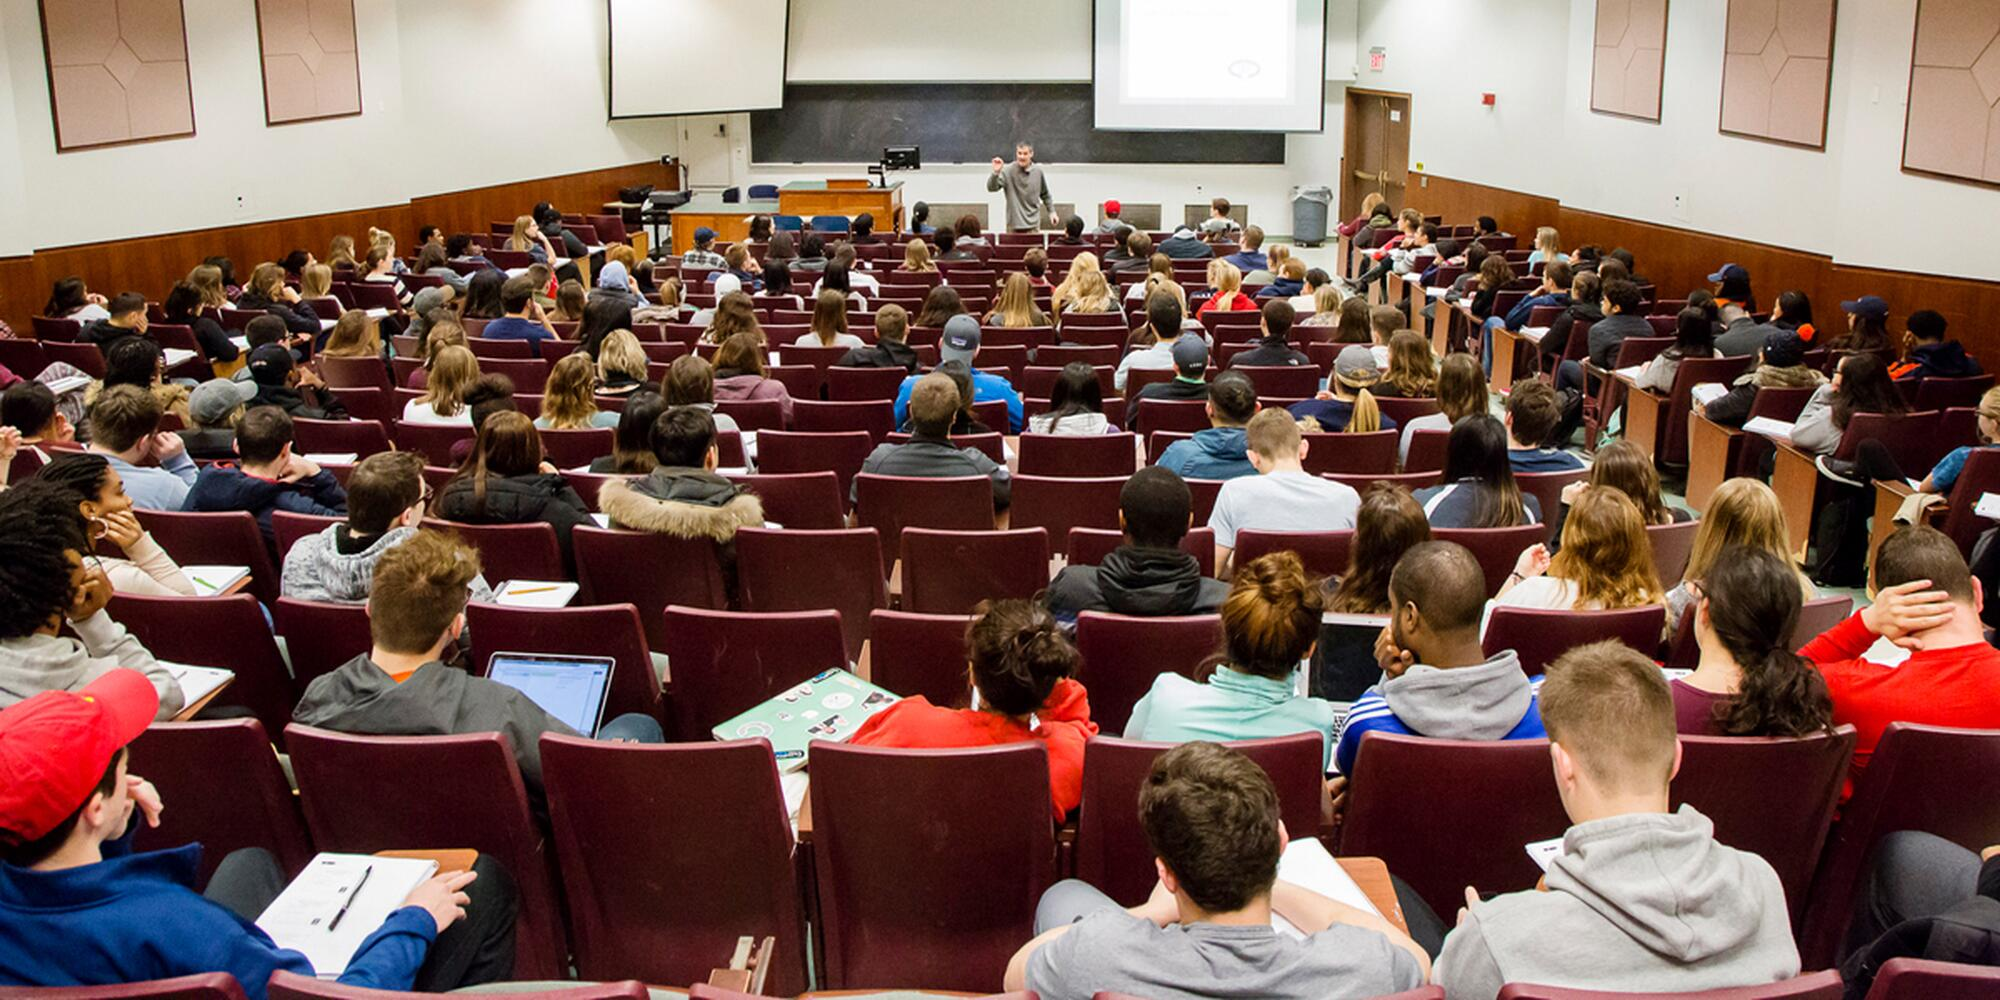 Photo taken from the back of a lecture hall, with rows of students watching a professor speak.